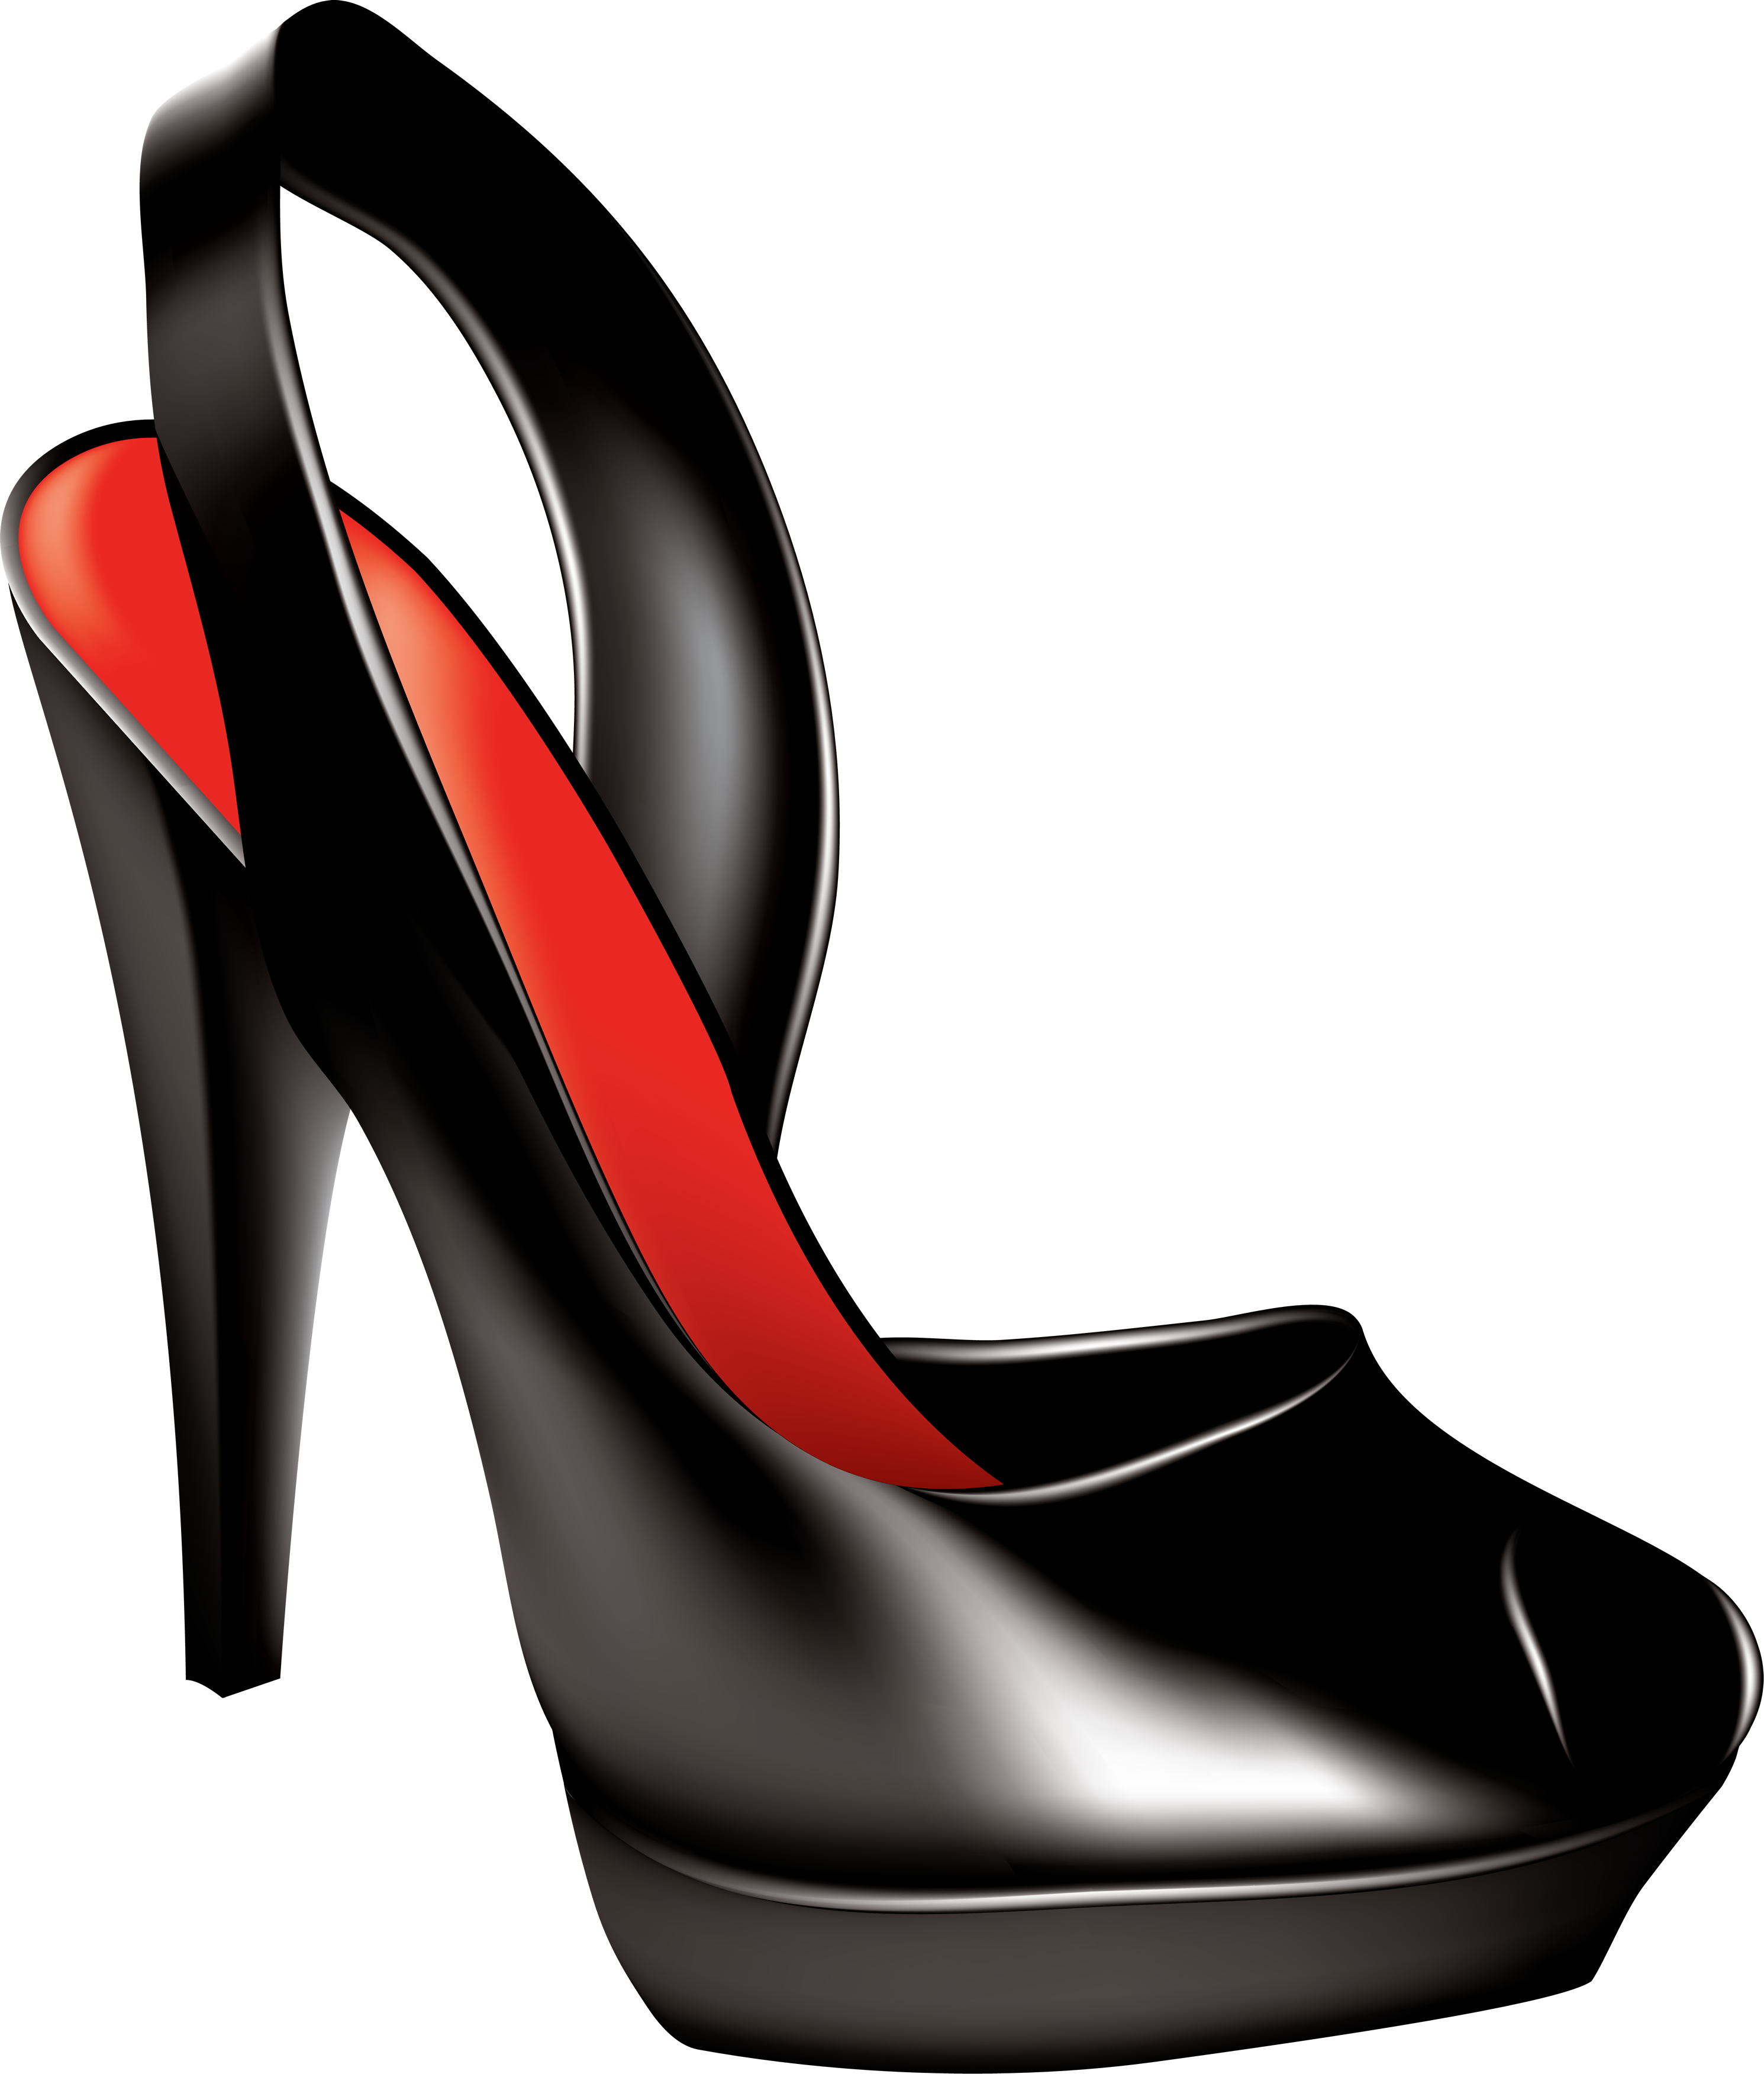 clip art library library Black women shoe png. Womens shoes clipart